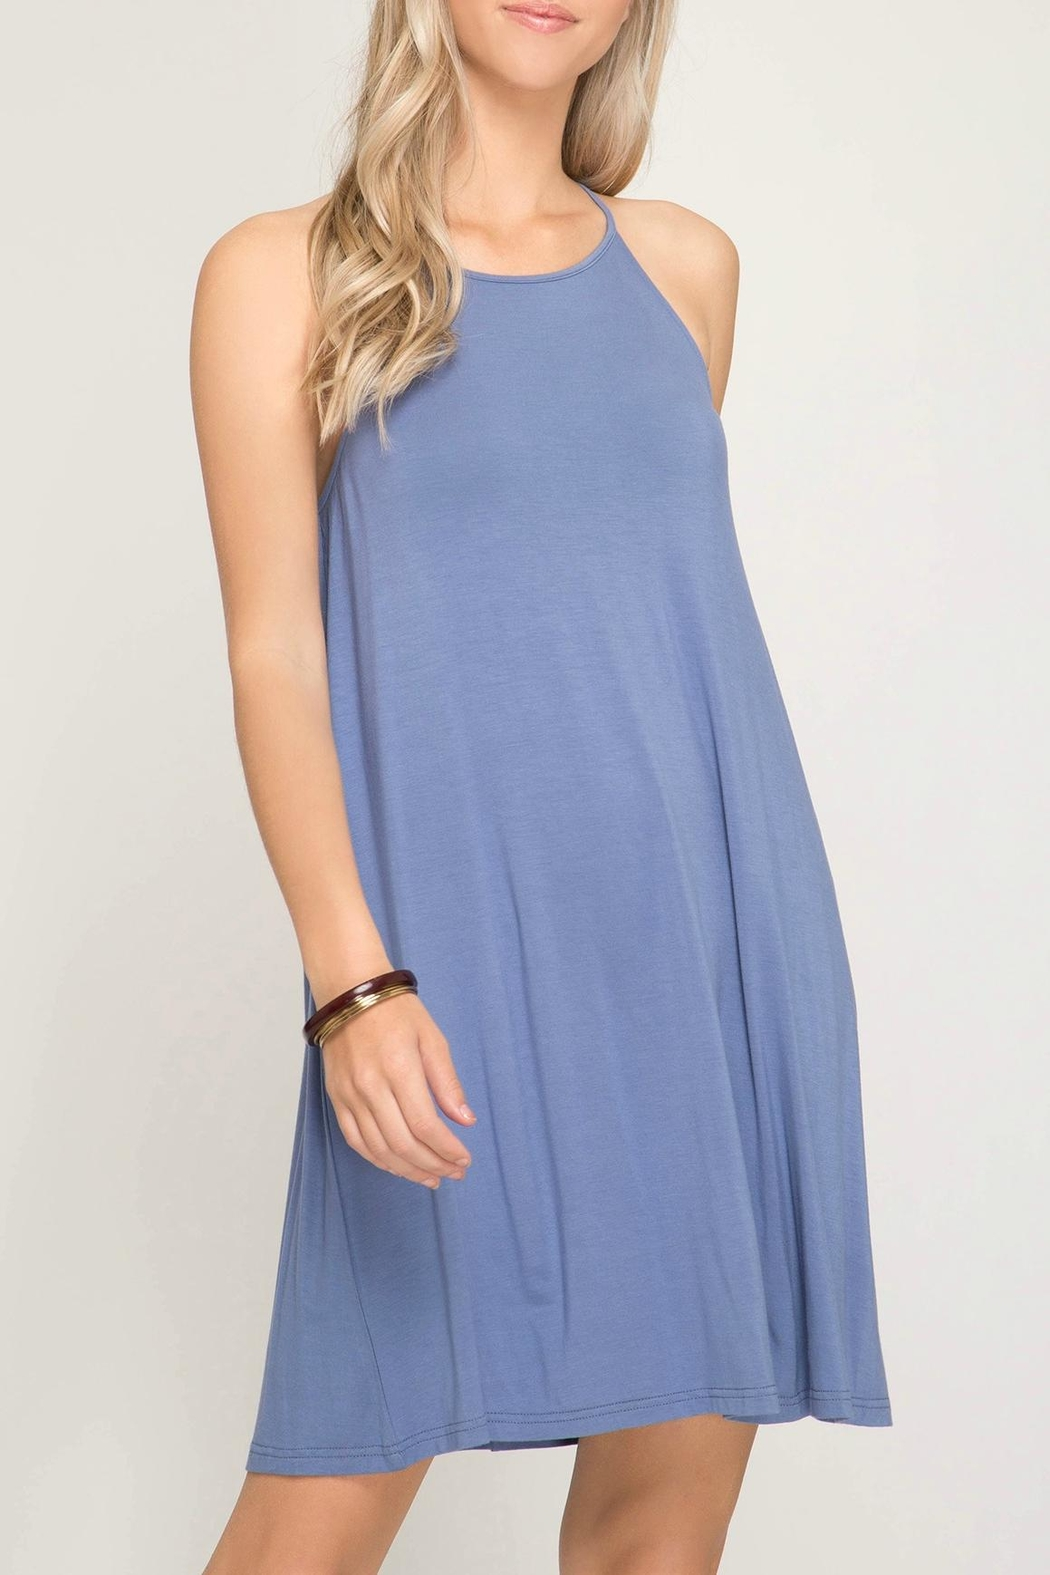 She + Sky Halter Knit Dress - Main Image